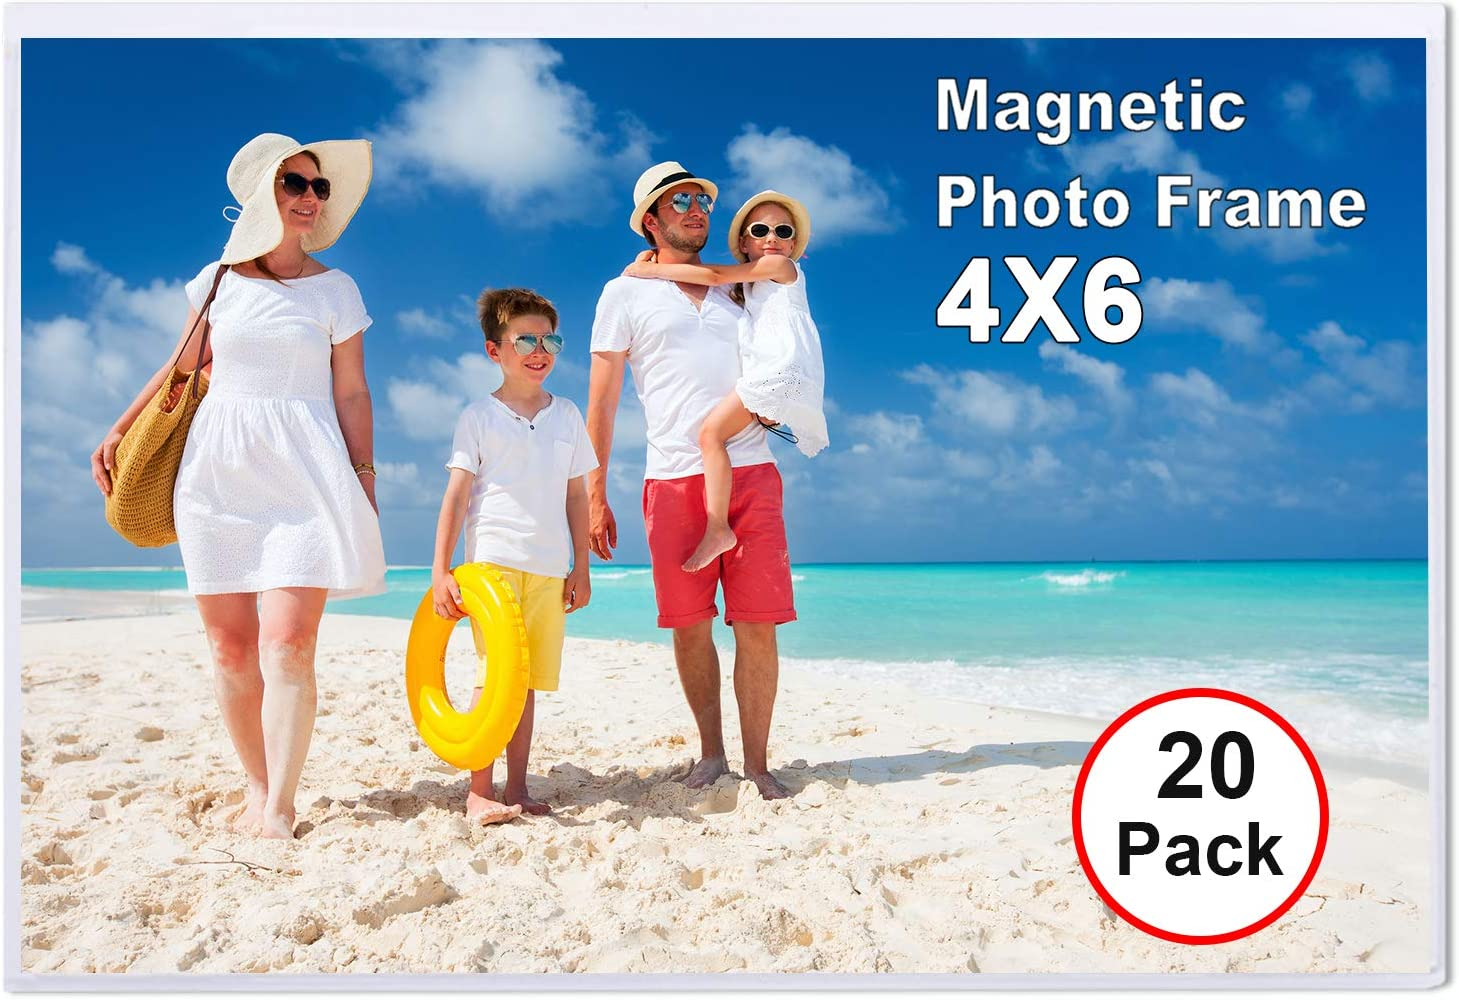 TNELTUEB 20 Pack Magnetic Picture Frames with Photo Pocket, 4 x 6 Magnetic Photo Sleeve Frame for Refrigerator, Fridge, Office Cabinet